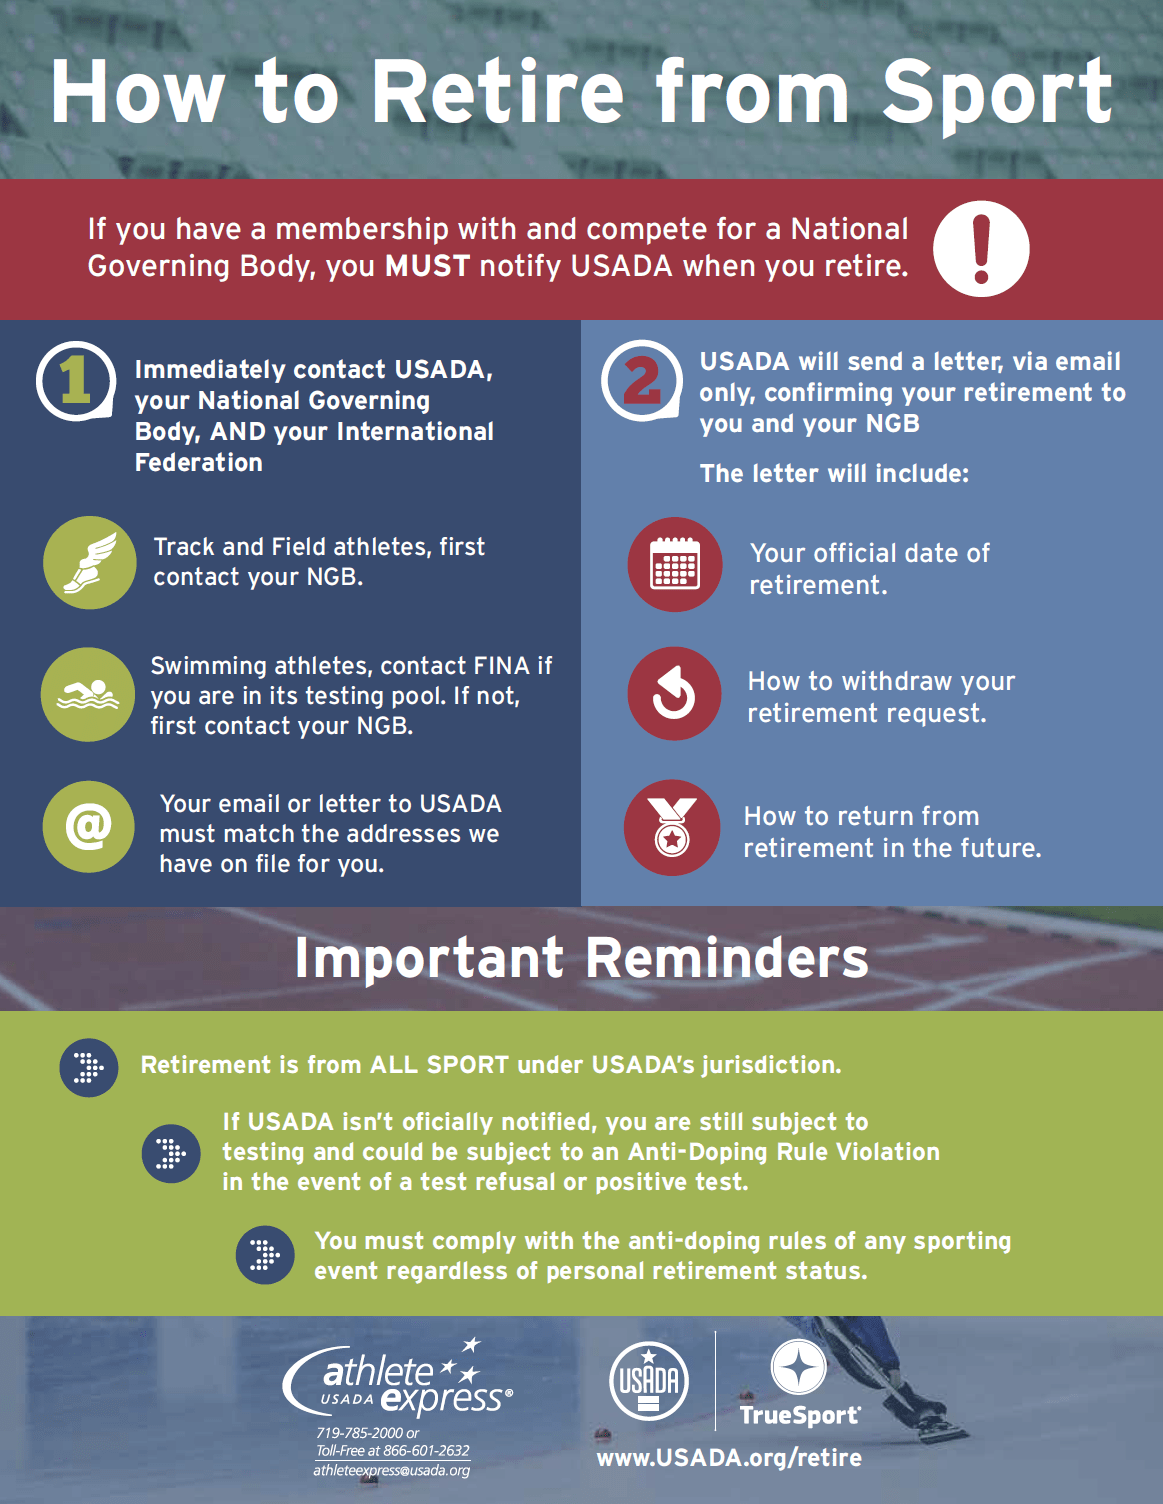 Infographic of retirement responsibilities for Olympic level athletes.